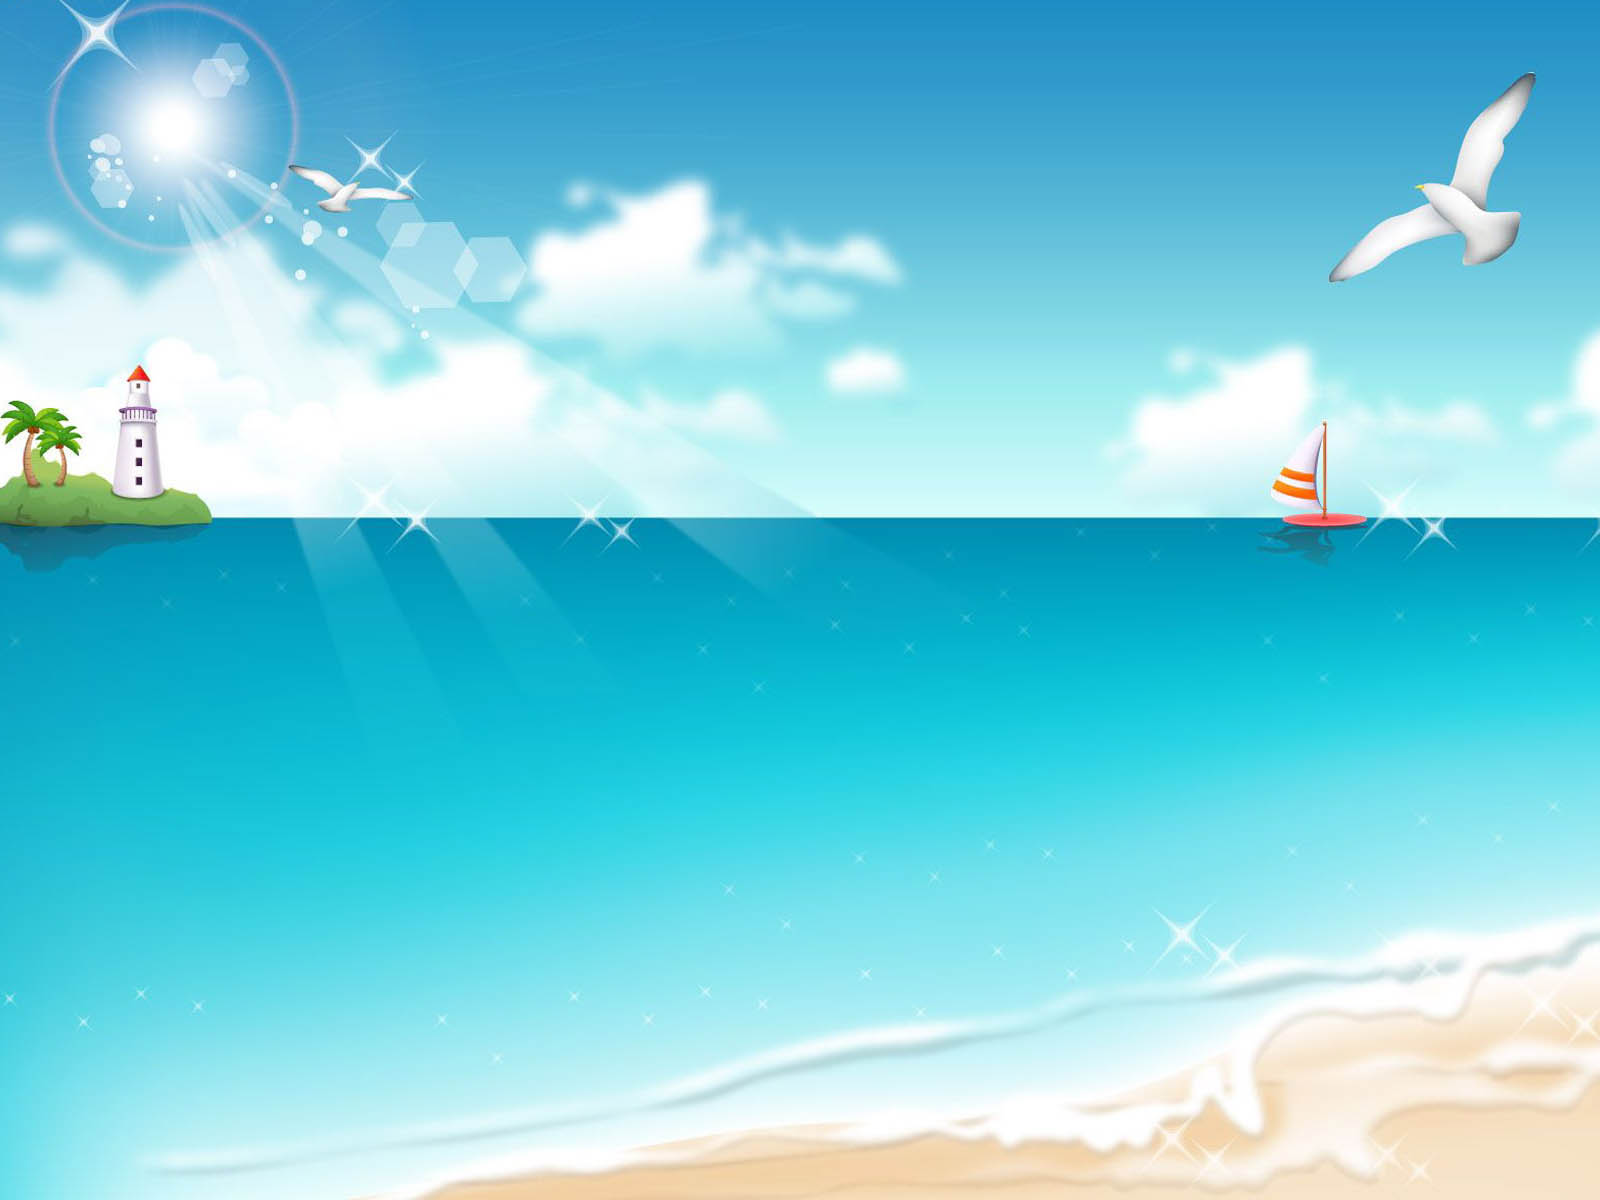 background vector wallpaper art - photo #2